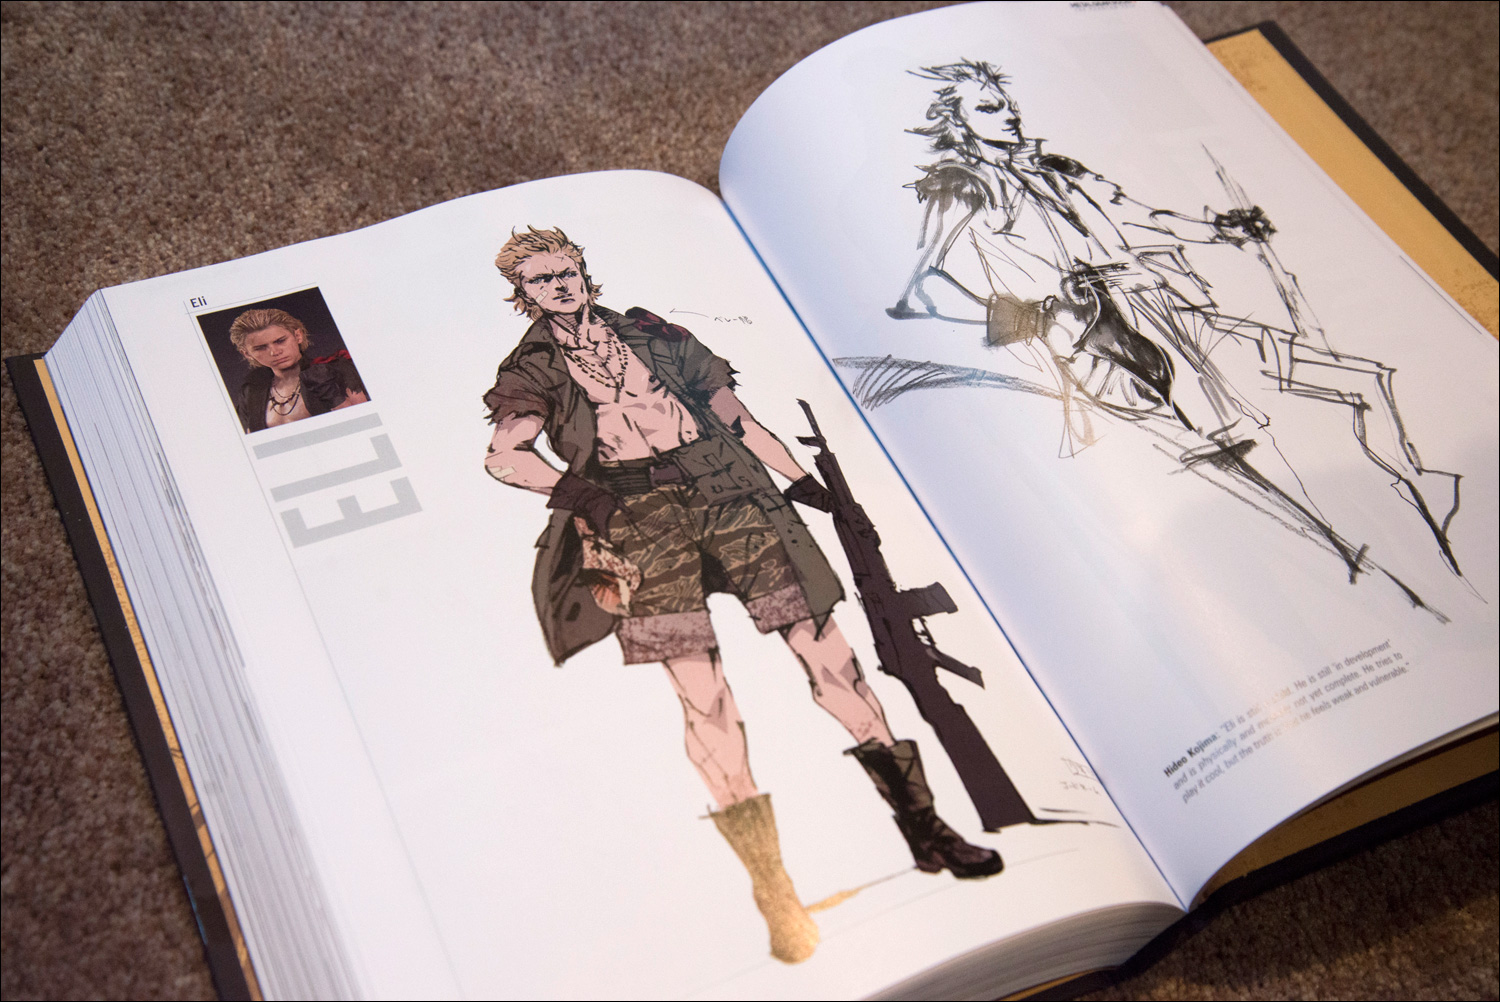 Metal-Gear-Solid-V-The-Phantom-Pain-Collector's-Edition-Eli-Art